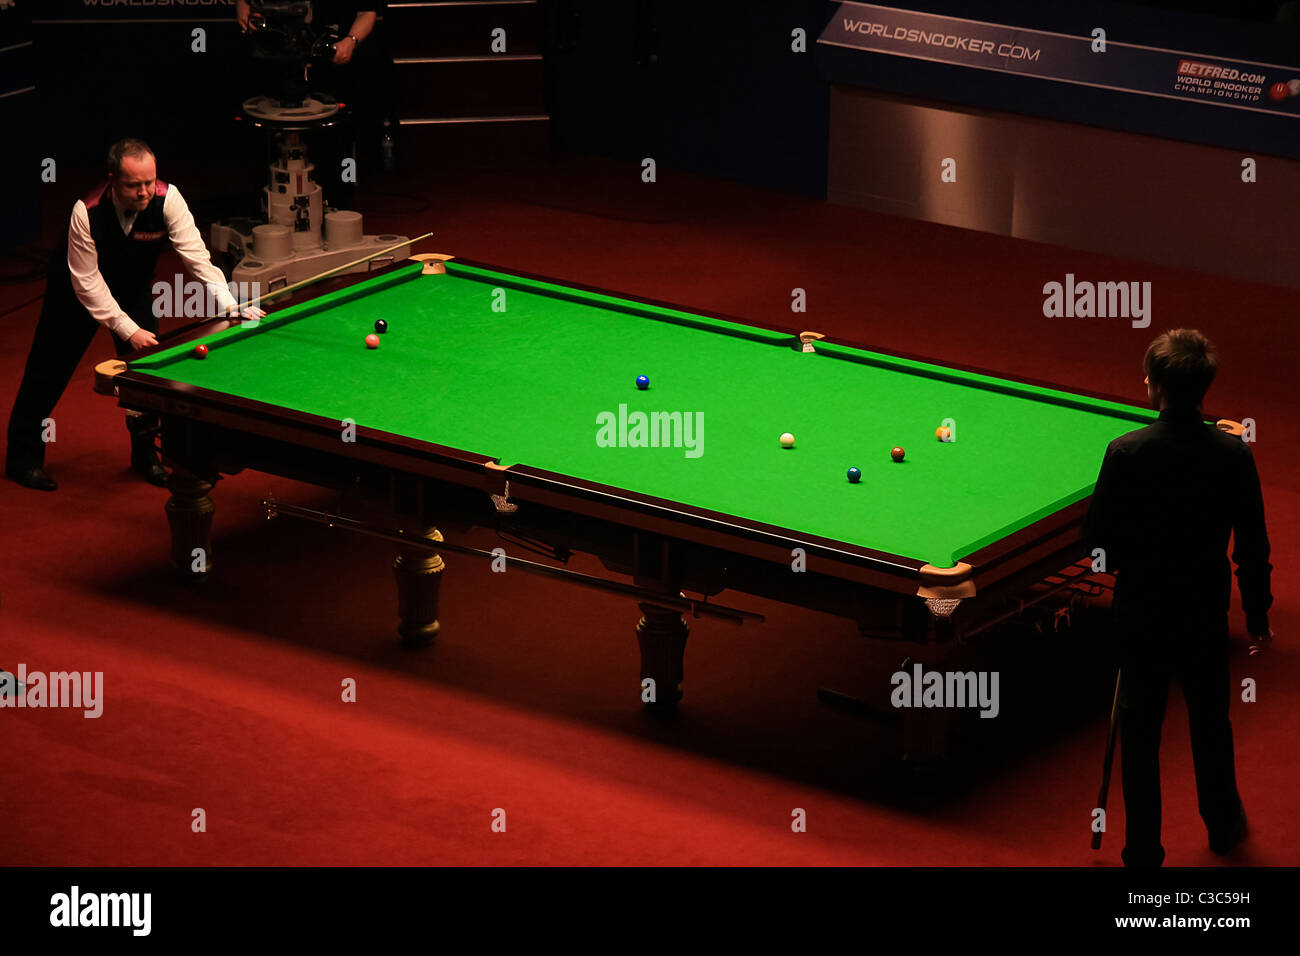 John Higgins in action against Judd Trump at the second session of the World Championship final at the Crucible, - Stock Image